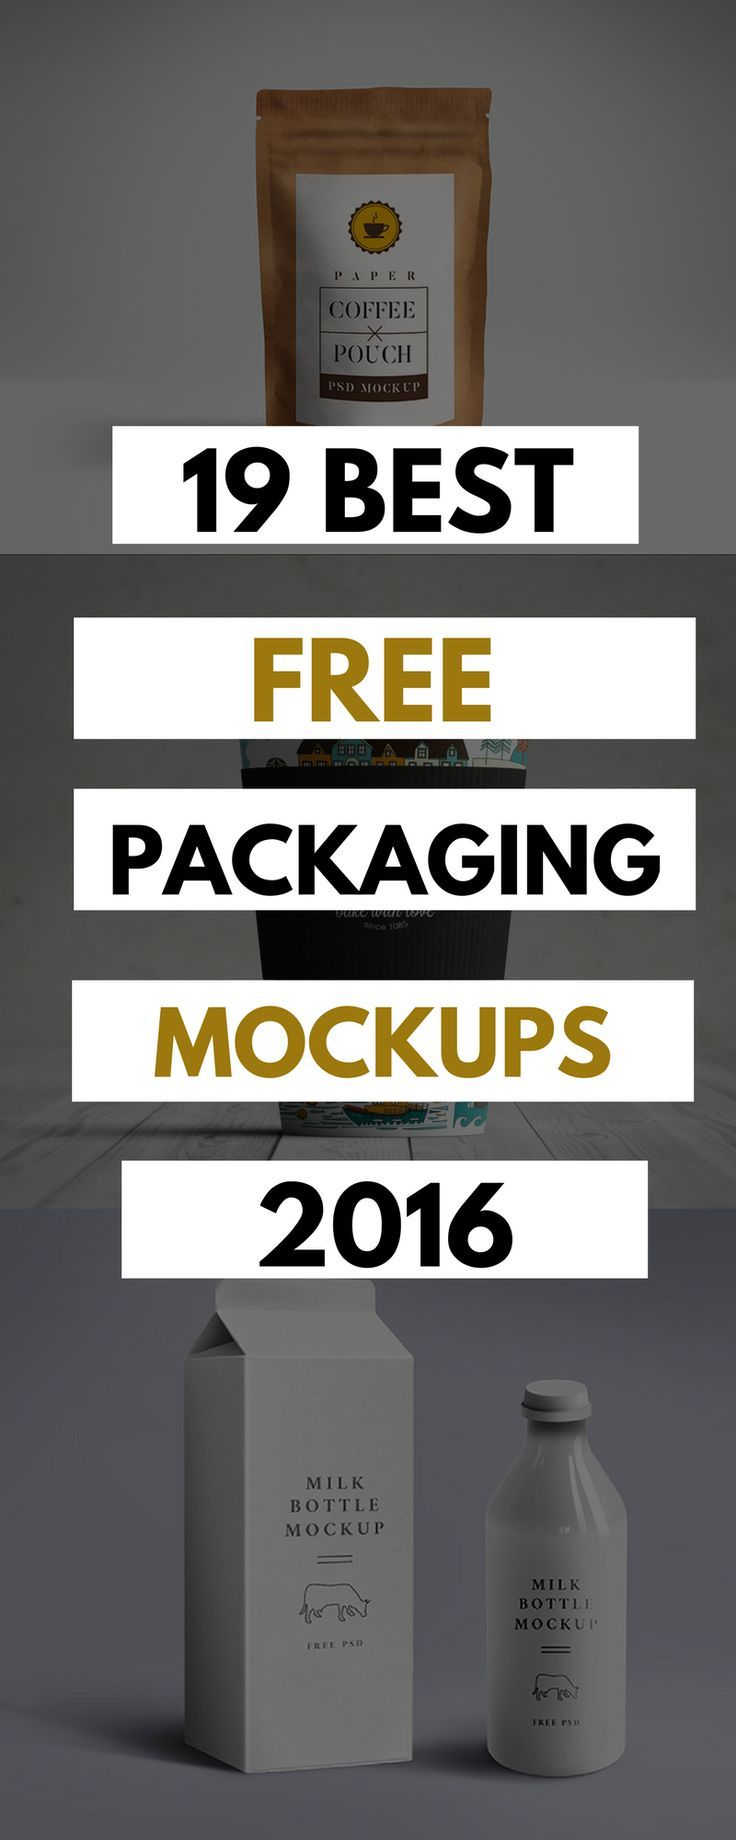 Download Download 19 Of The Best Free Packaging Mockups Of 2016 Easily Editable And Complete With Shadows Graphic Design Mockup Packaging Mockup Free Packaging Mockup